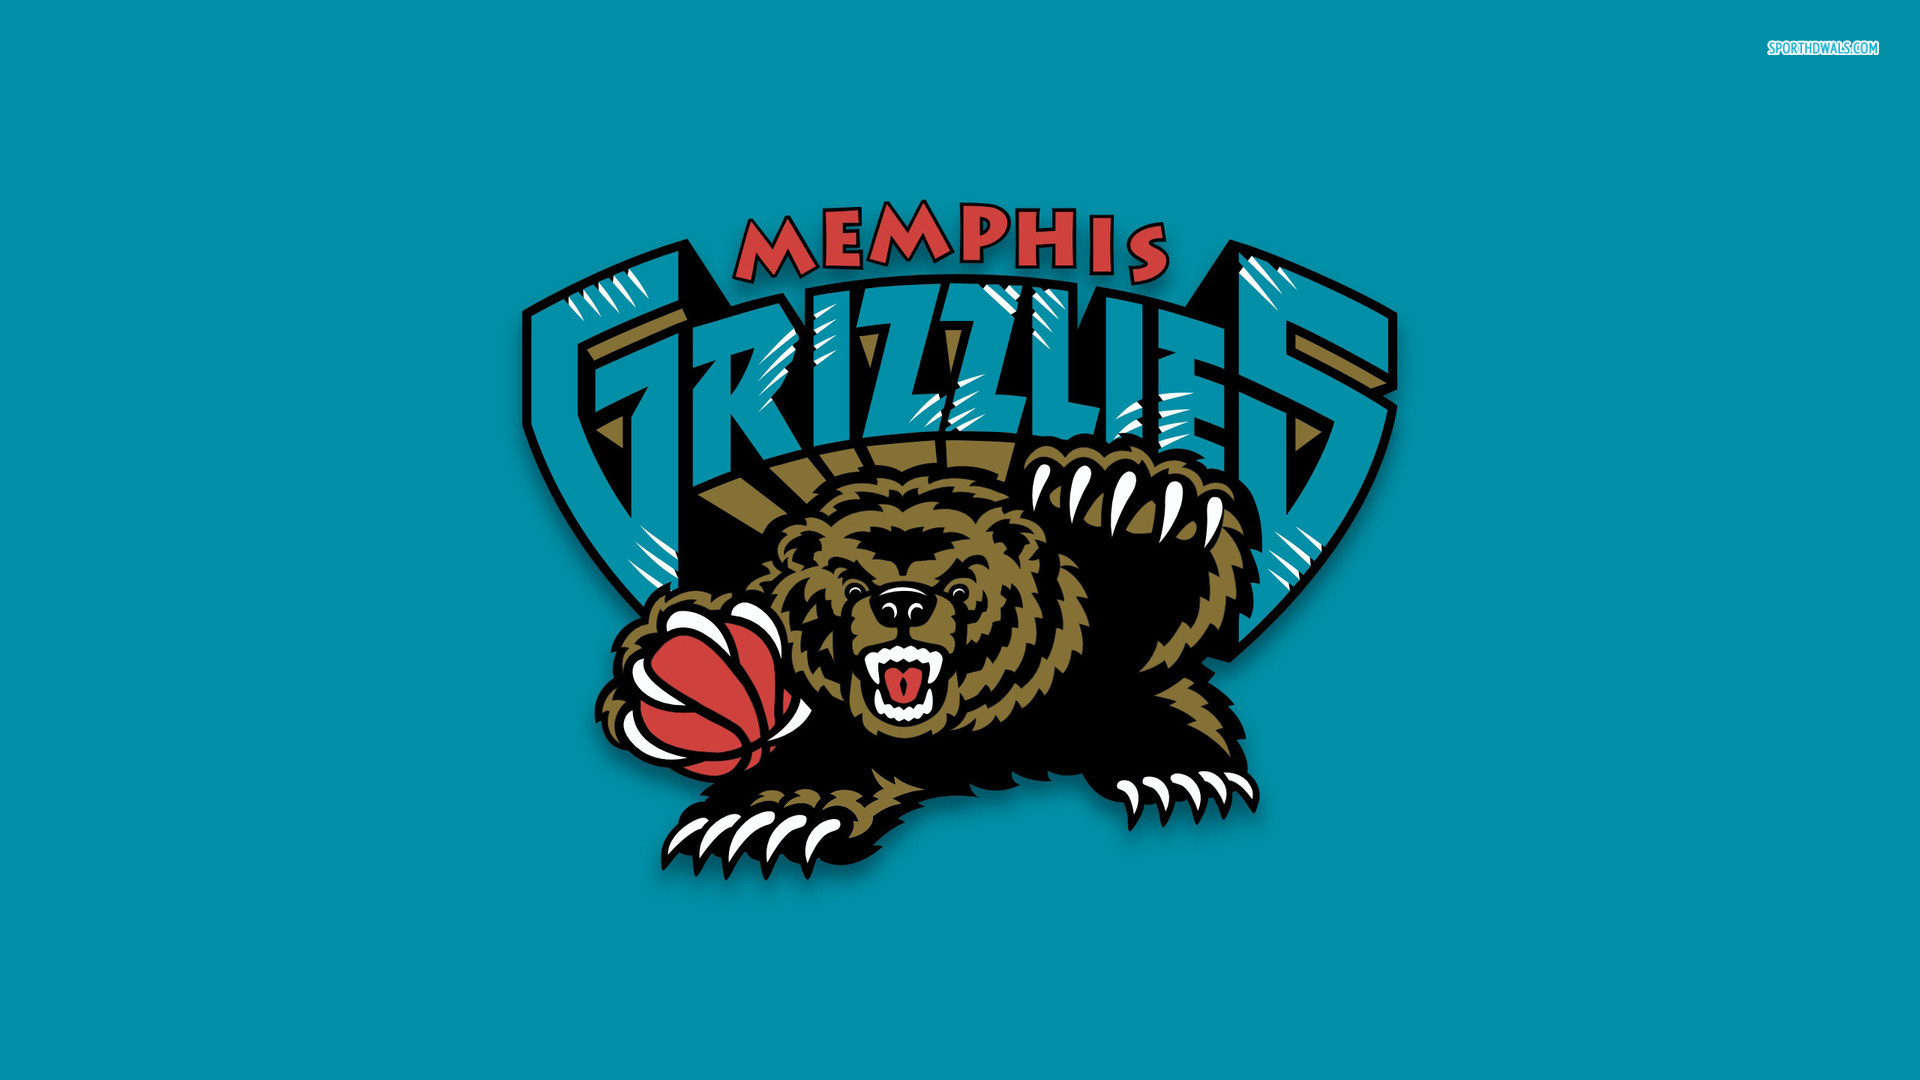 Memphis Grizzlies wallpapers hd